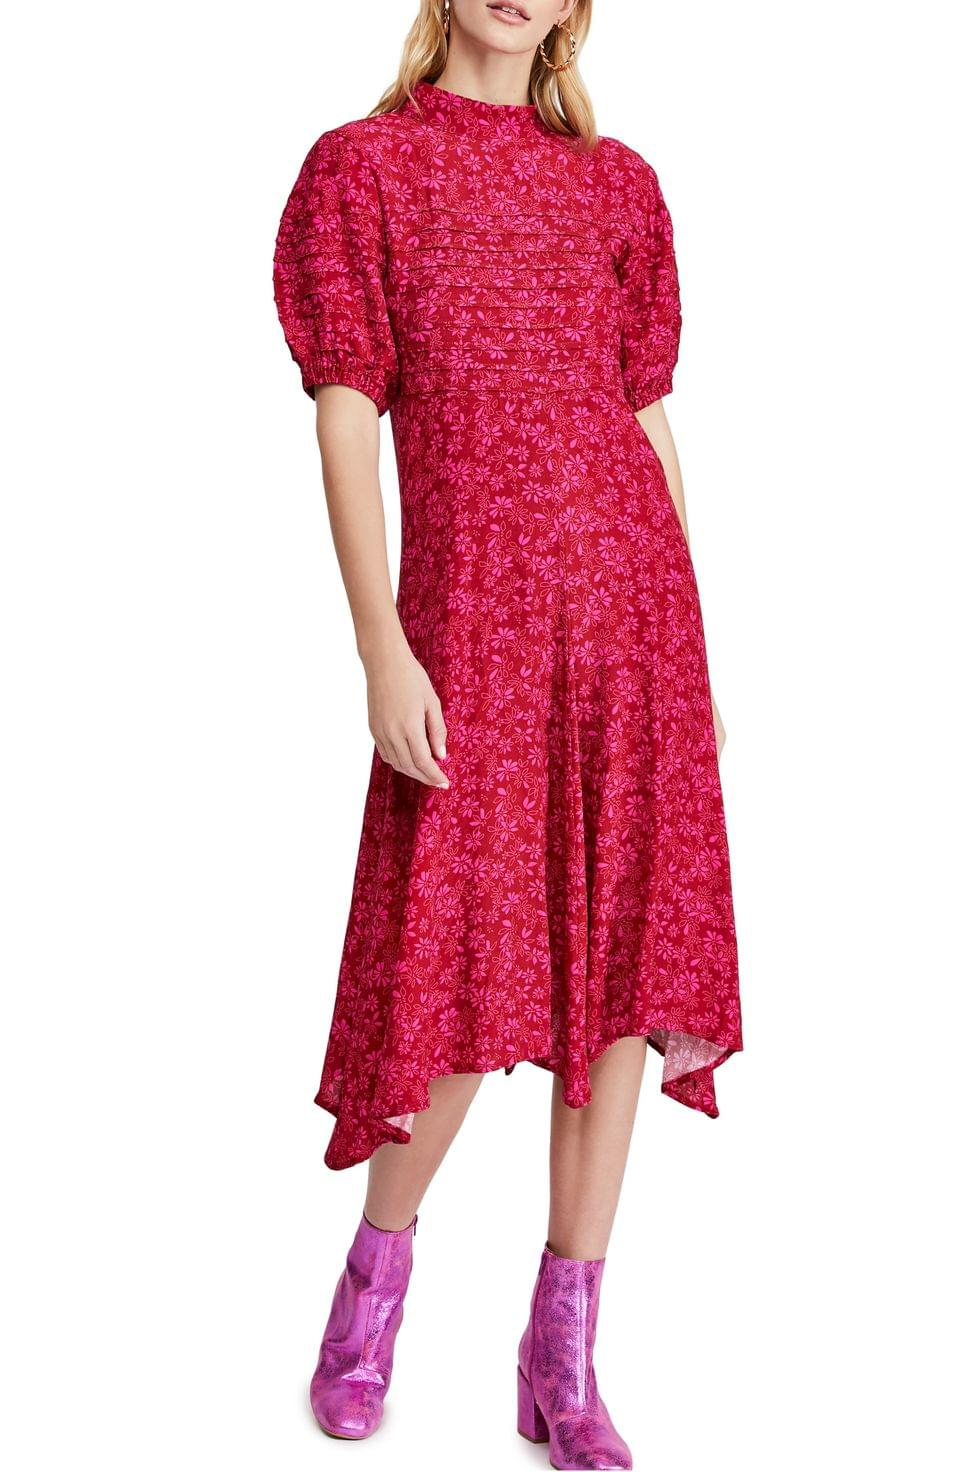 Women's Free People Jessie Floral Print Dress